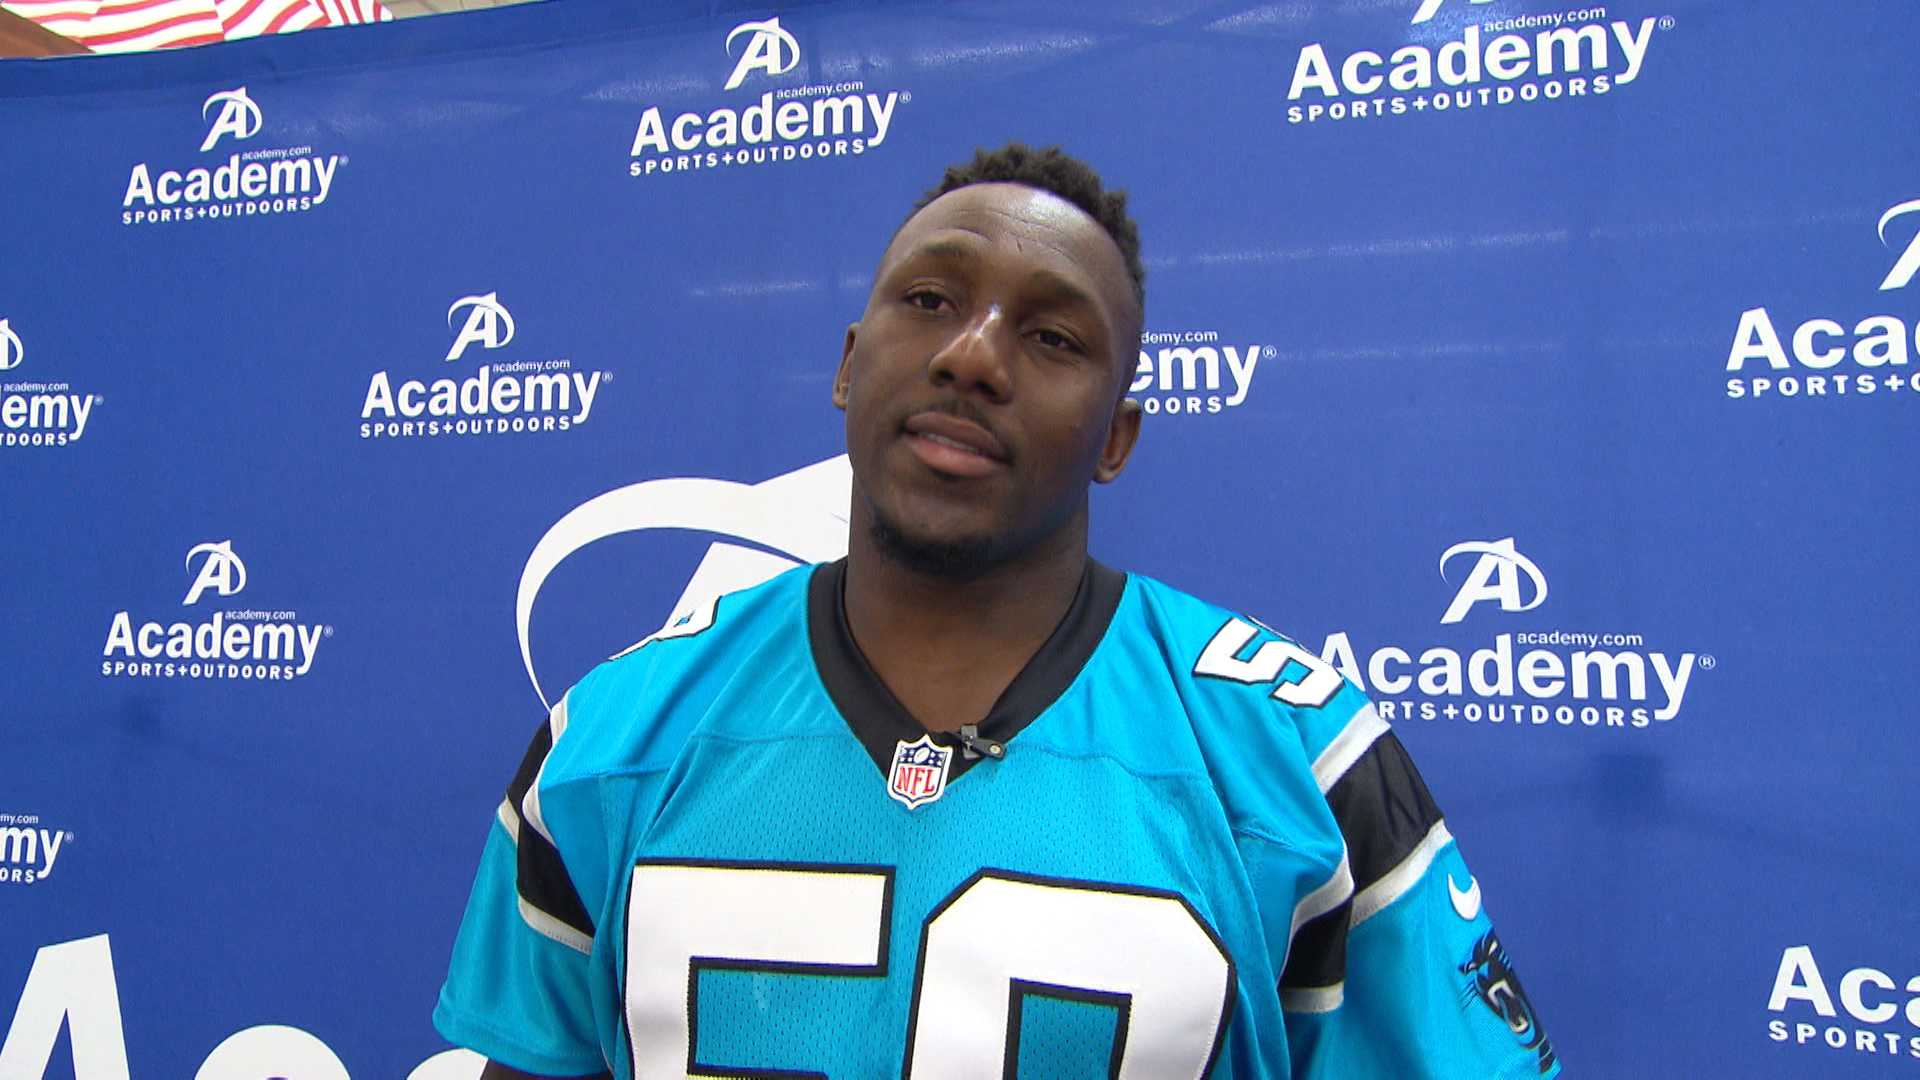 Panthers sign Thomas Davis to extension